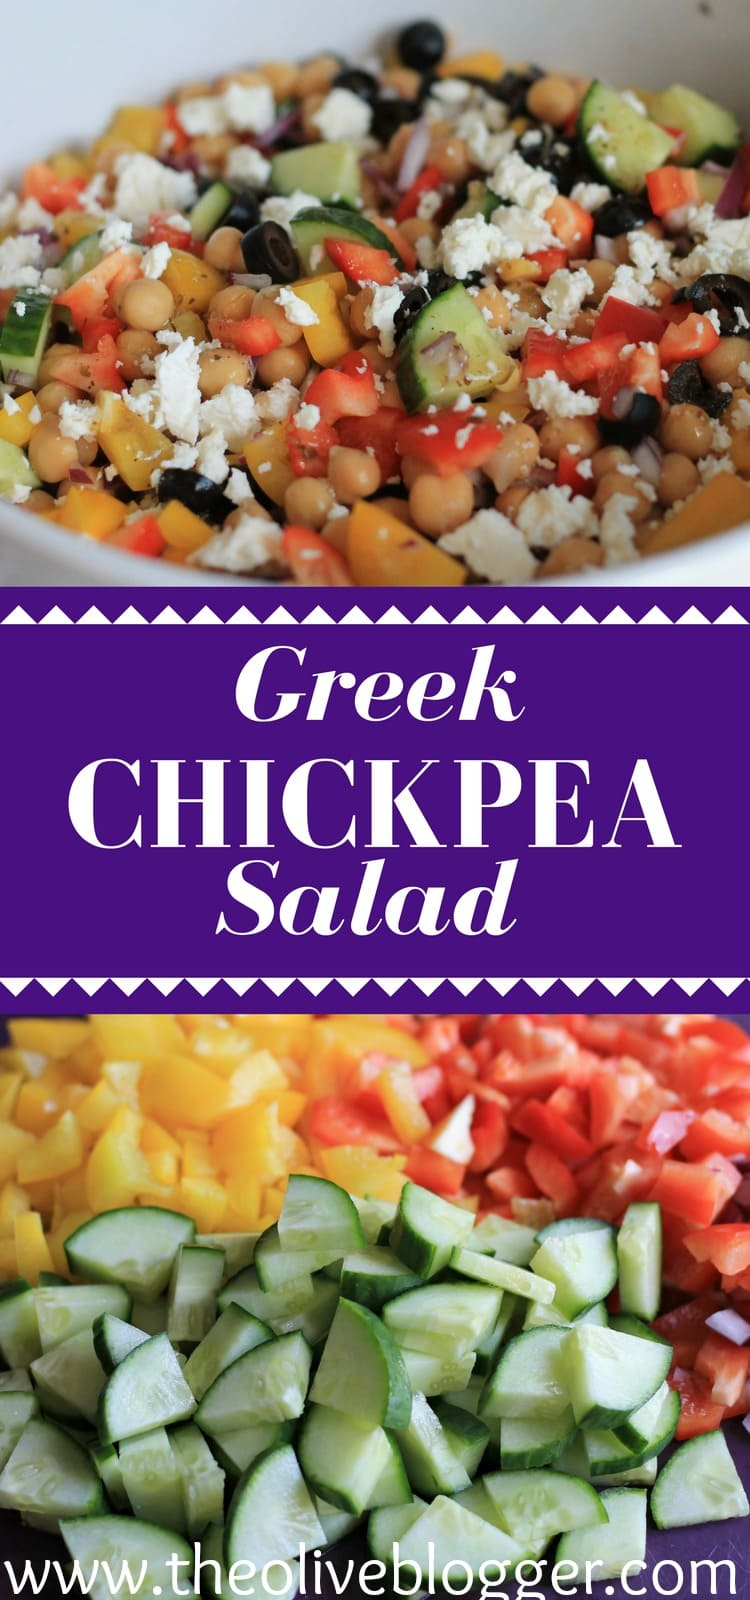 Greek Chickpea Salad - A delicious and SUPER EASY salad that is perfect for summer entertaining!